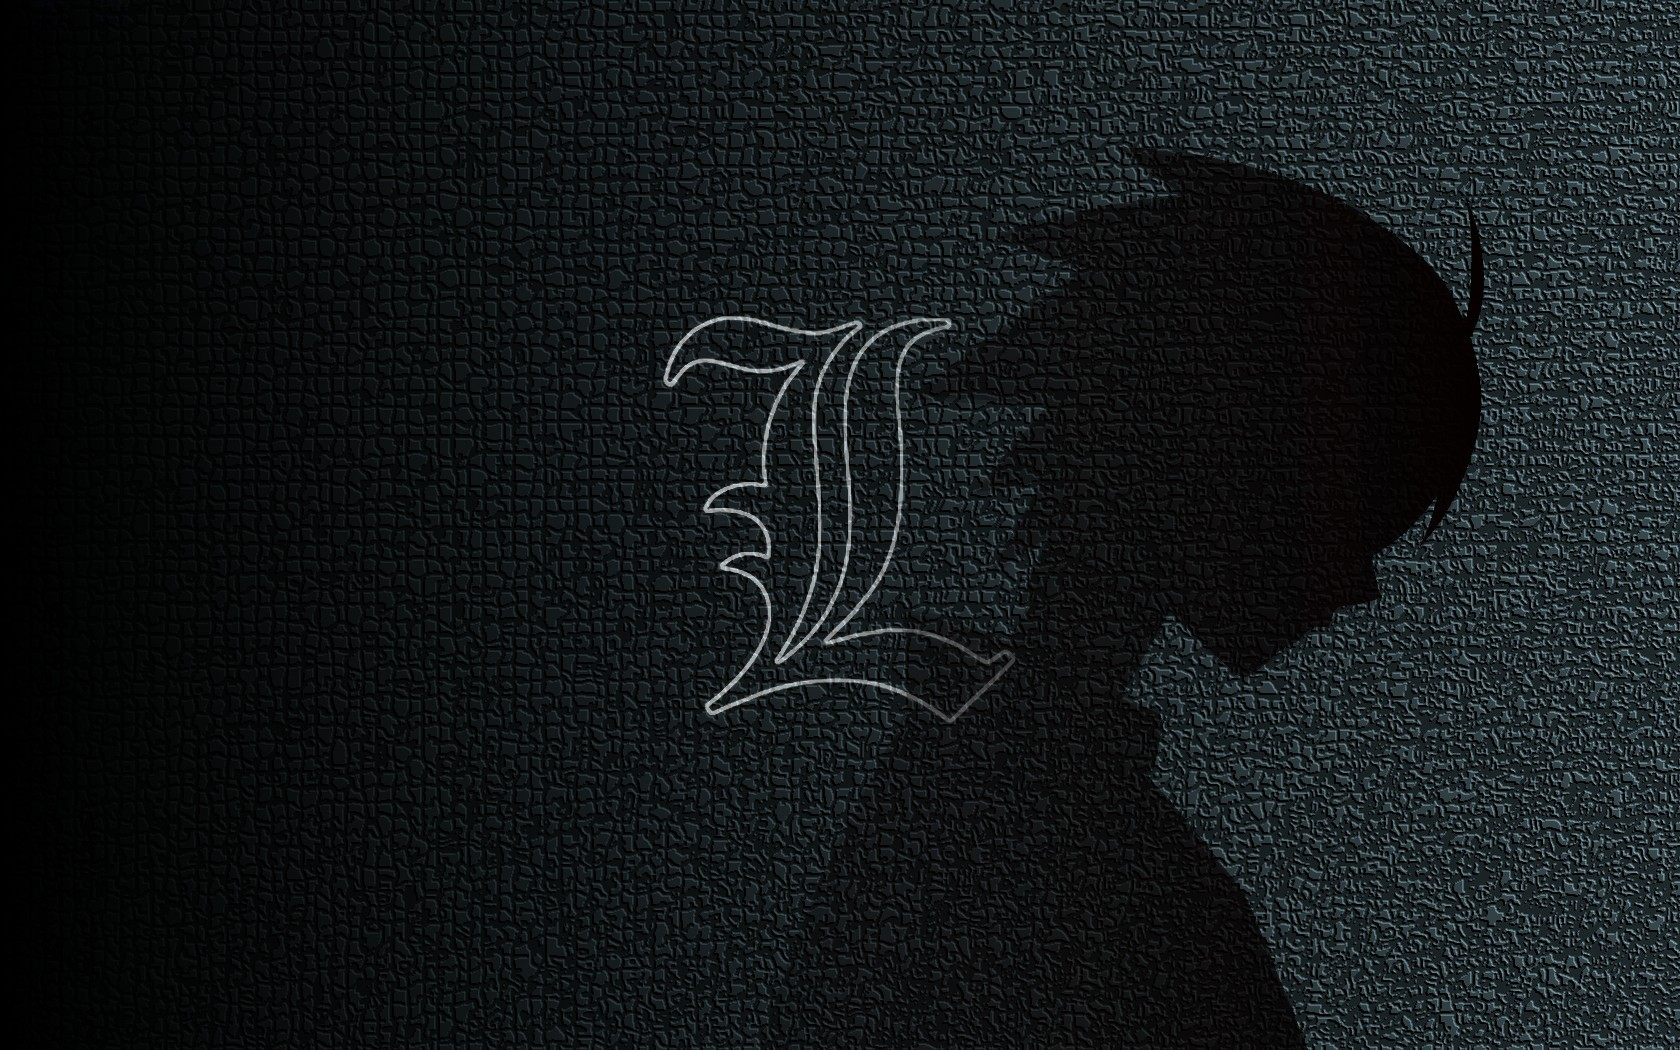 Wallpaper Death Note Hd 10 Background Wallpaper - Animewp.com